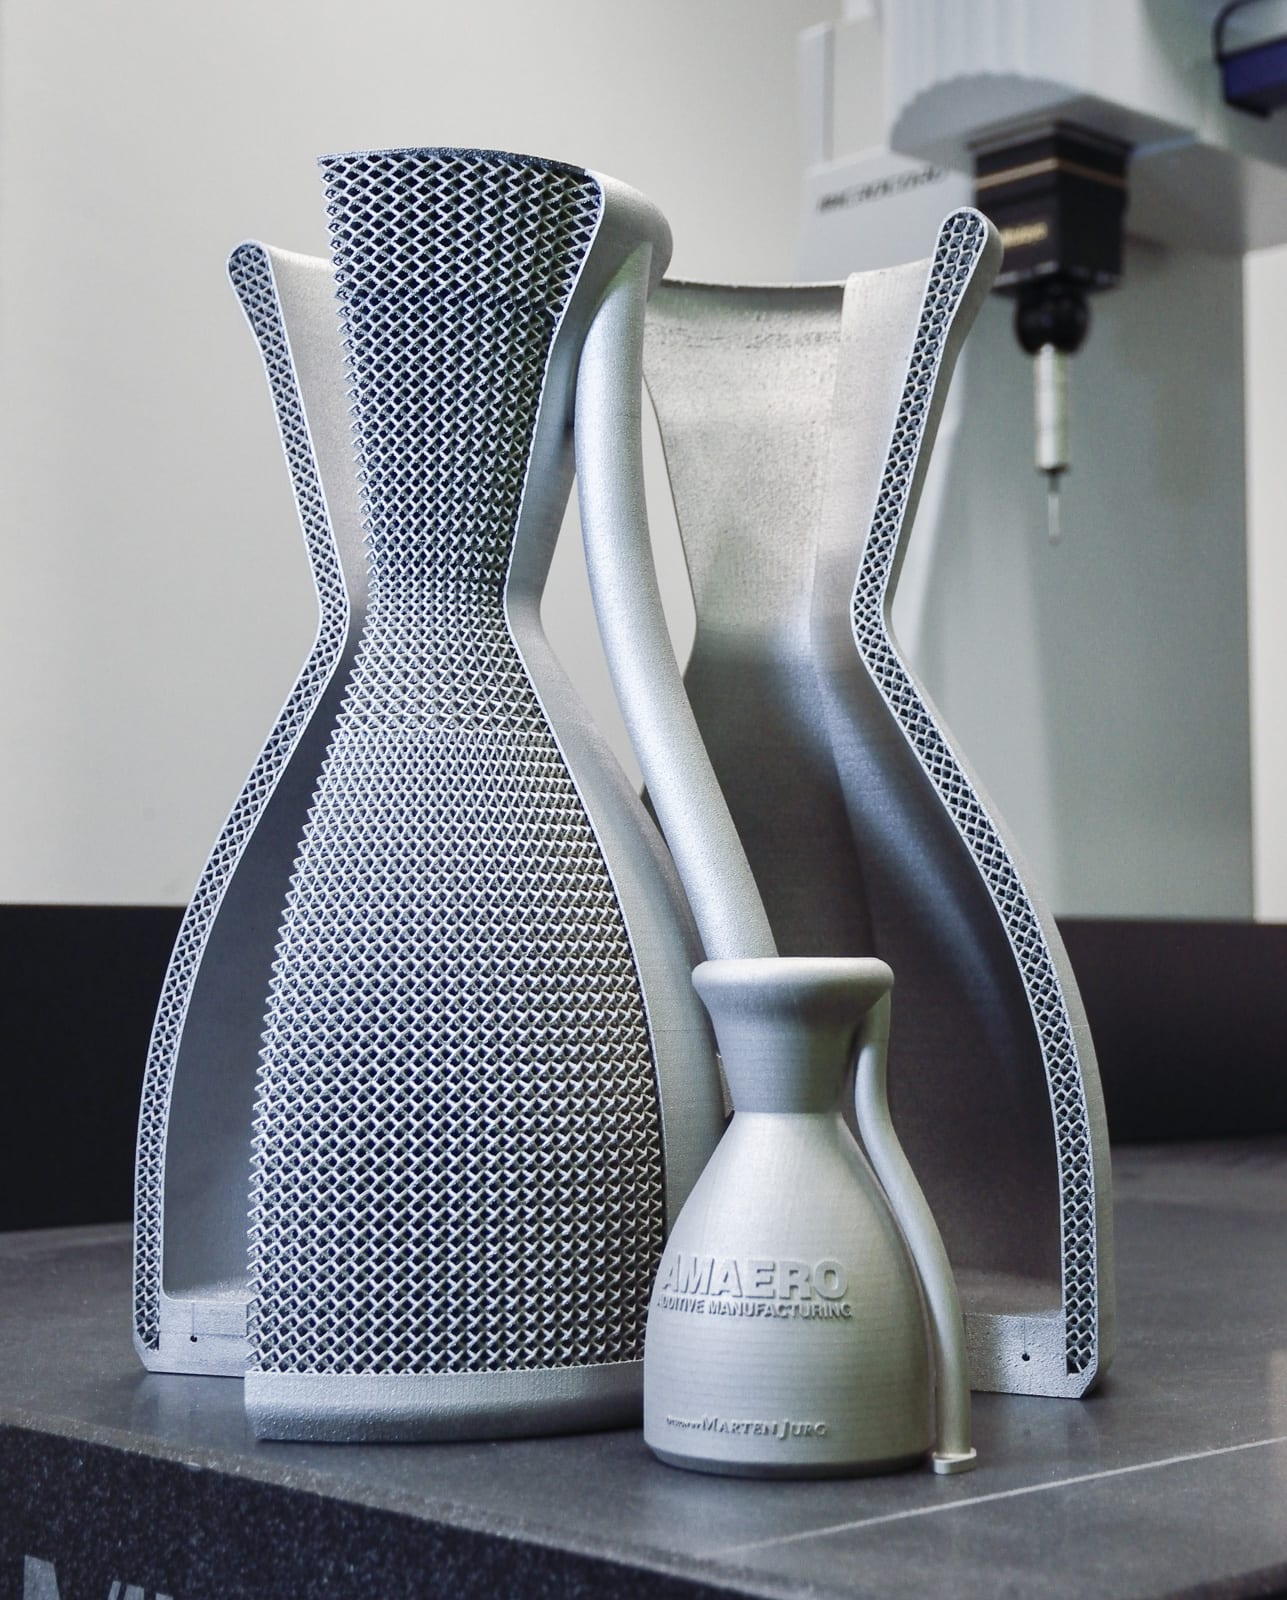 Additive Manufacturing News Archives | i3D MFG